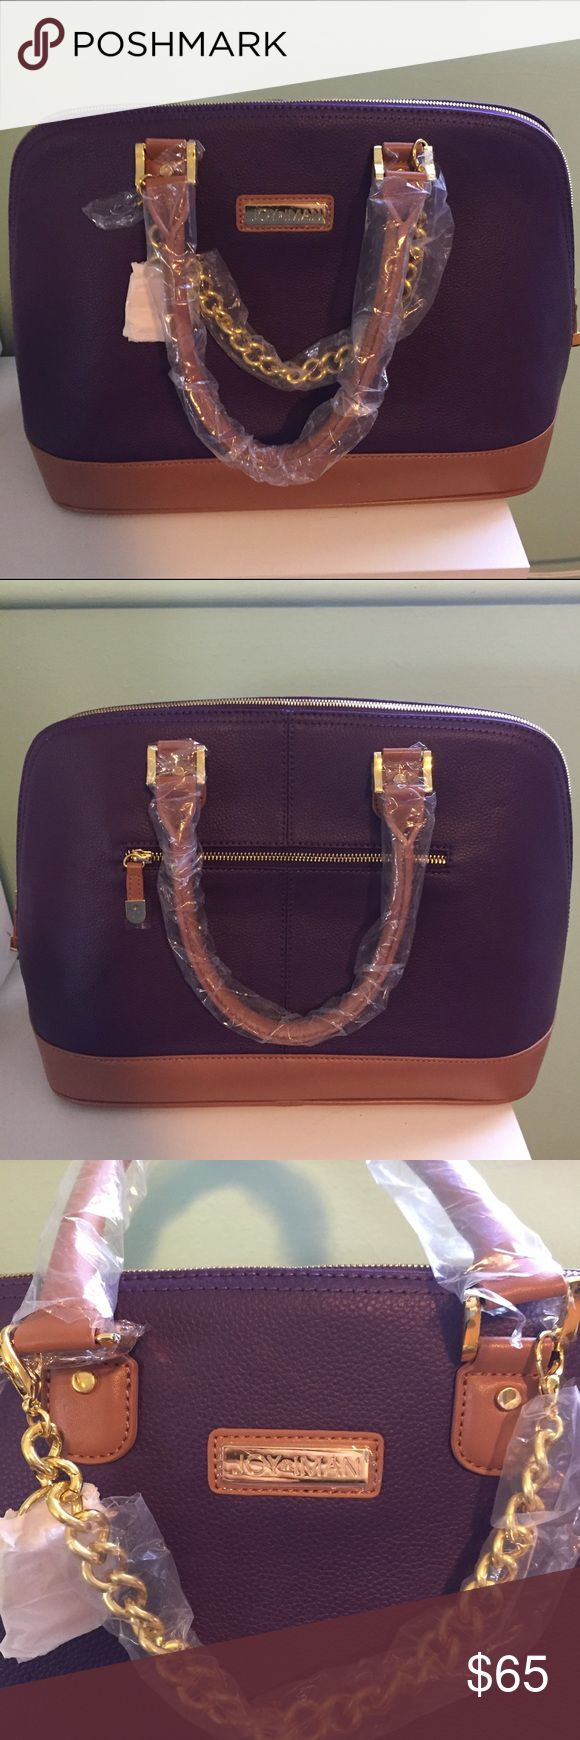 "NWOT Large Purple Purse Brand new beautiful bag from HSN (designed by Joy Mangano). It's very sturdy and perfect to hold everything you need. Over 10 different pockets inside to store essentials including credit card slots and a pen pocket as well as a few zippered pockets. There is a small watch charm on the gold chain on the exterior of the bag. All hardware is gold. Dimensions are: 11""H x 15""W x 7""D Joy and Iman Bags Satchels"